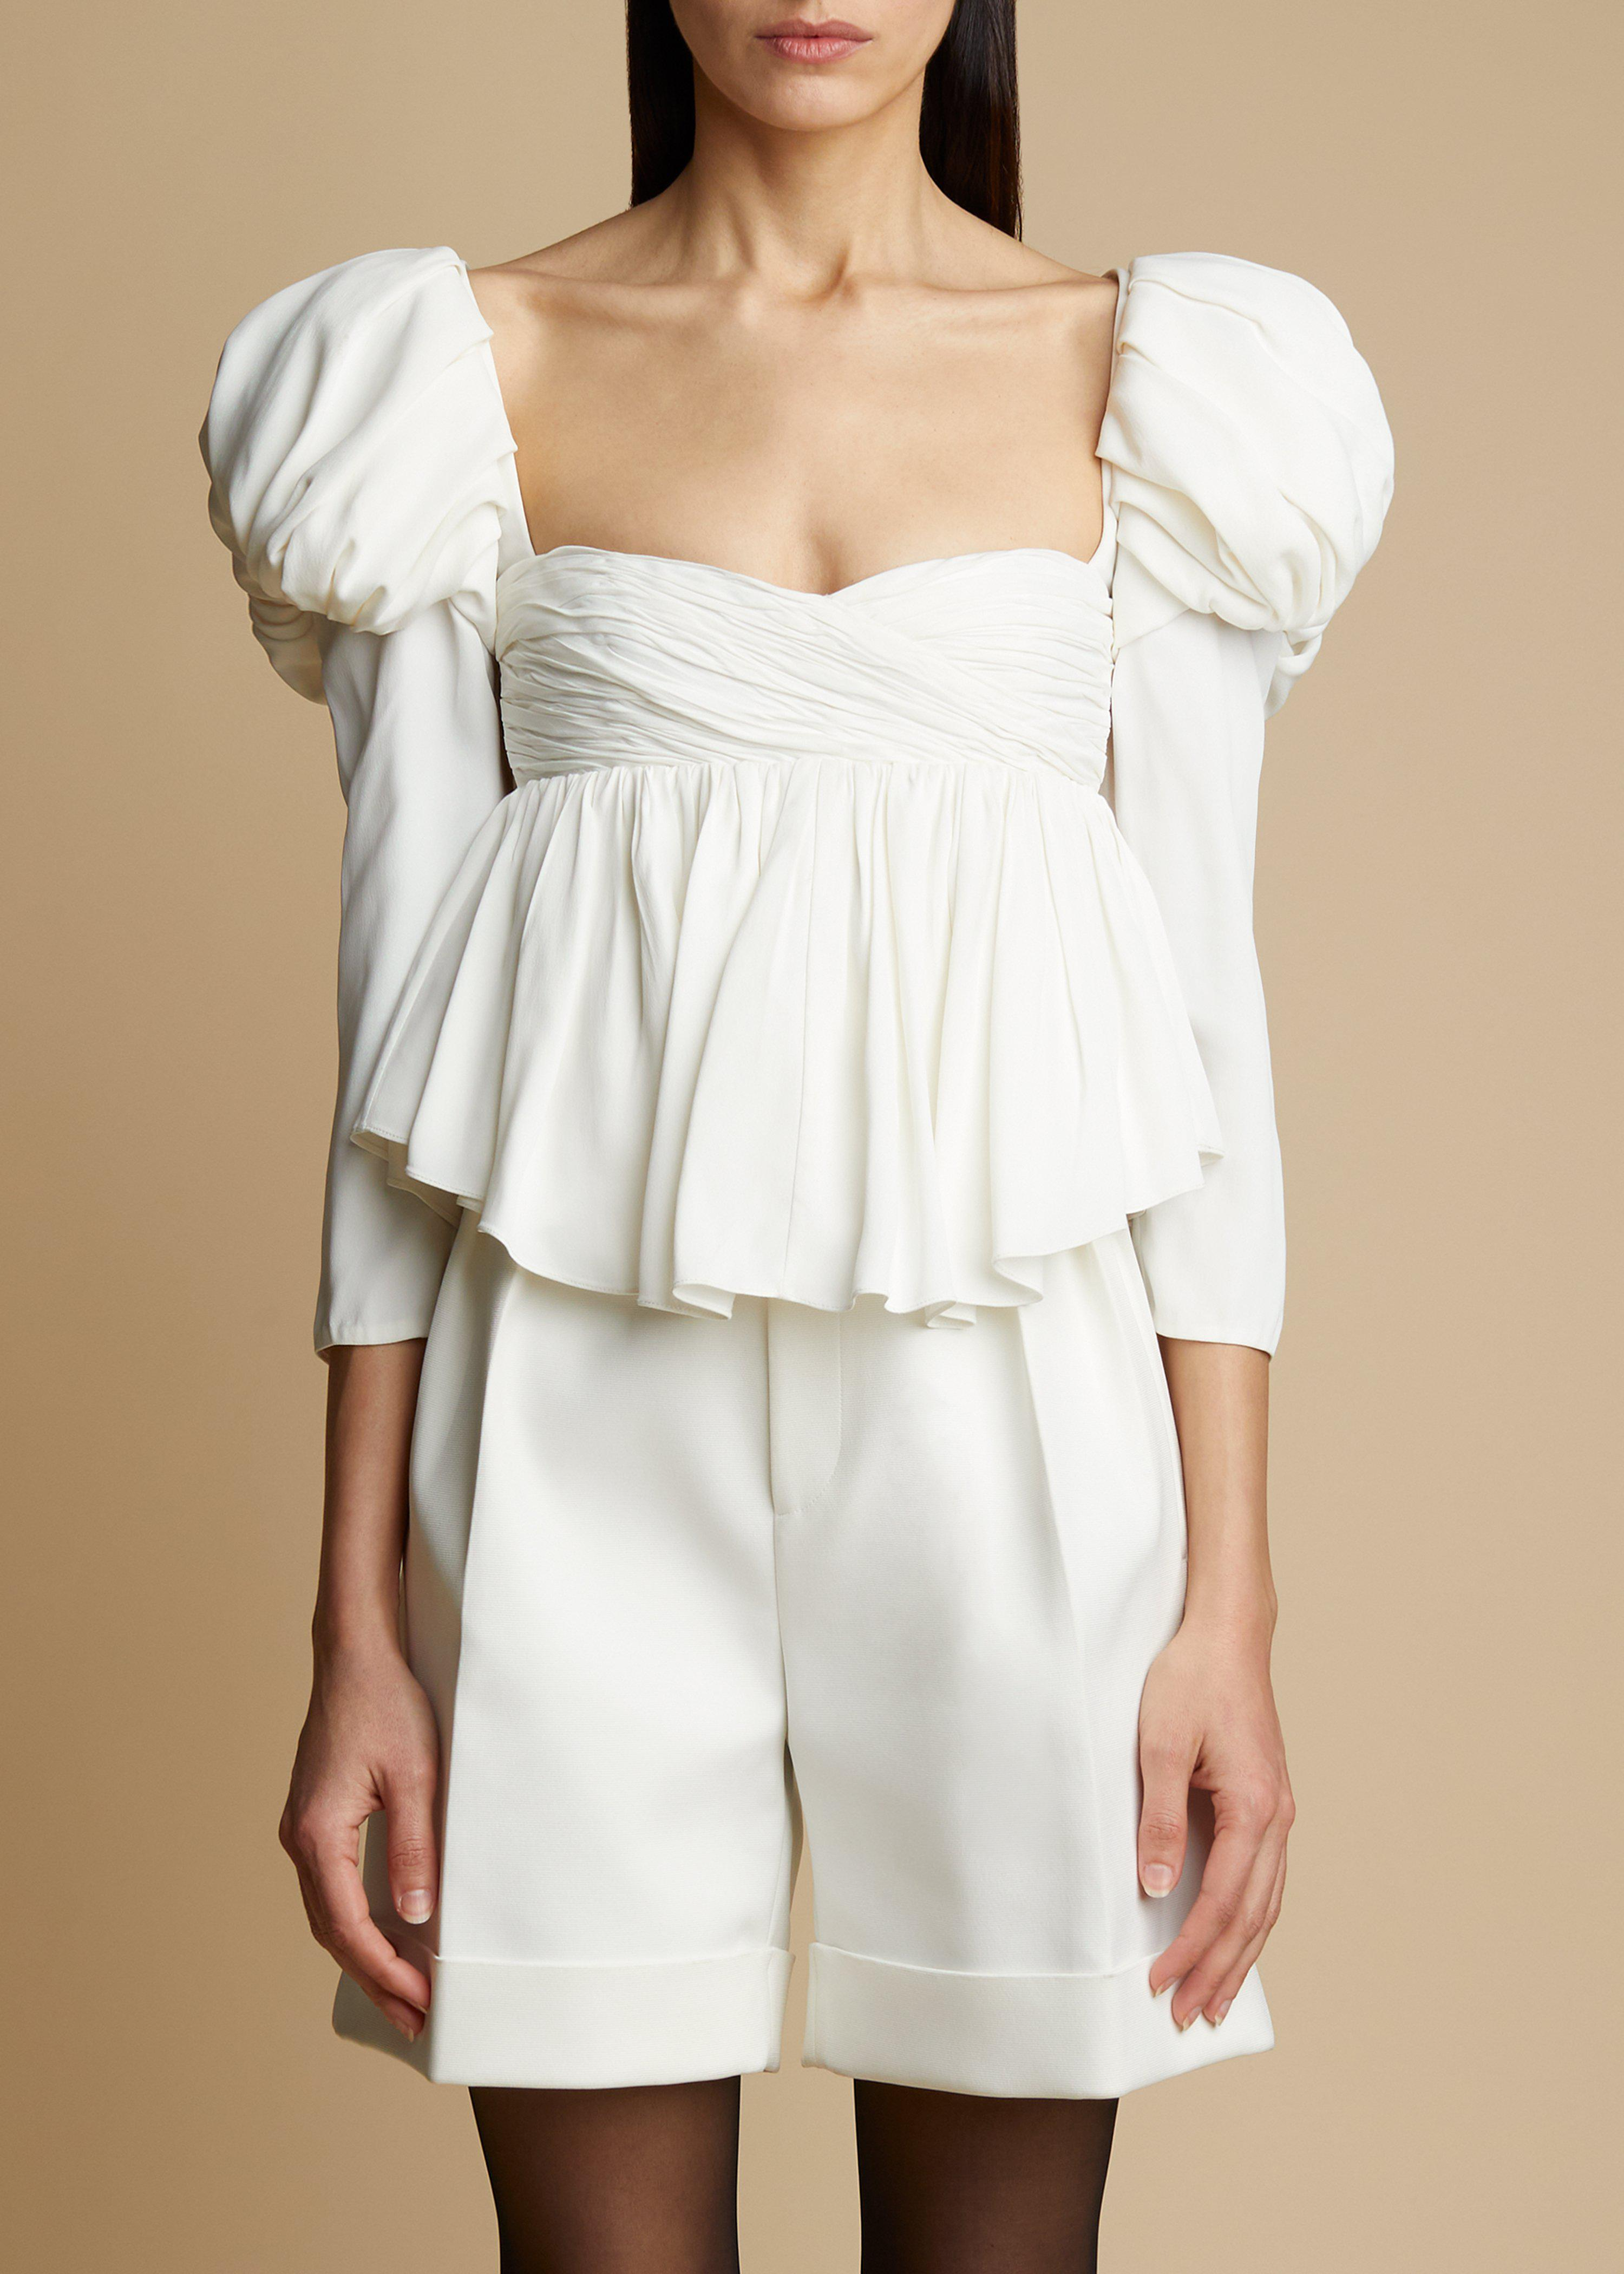 The Kim Top in Ivory